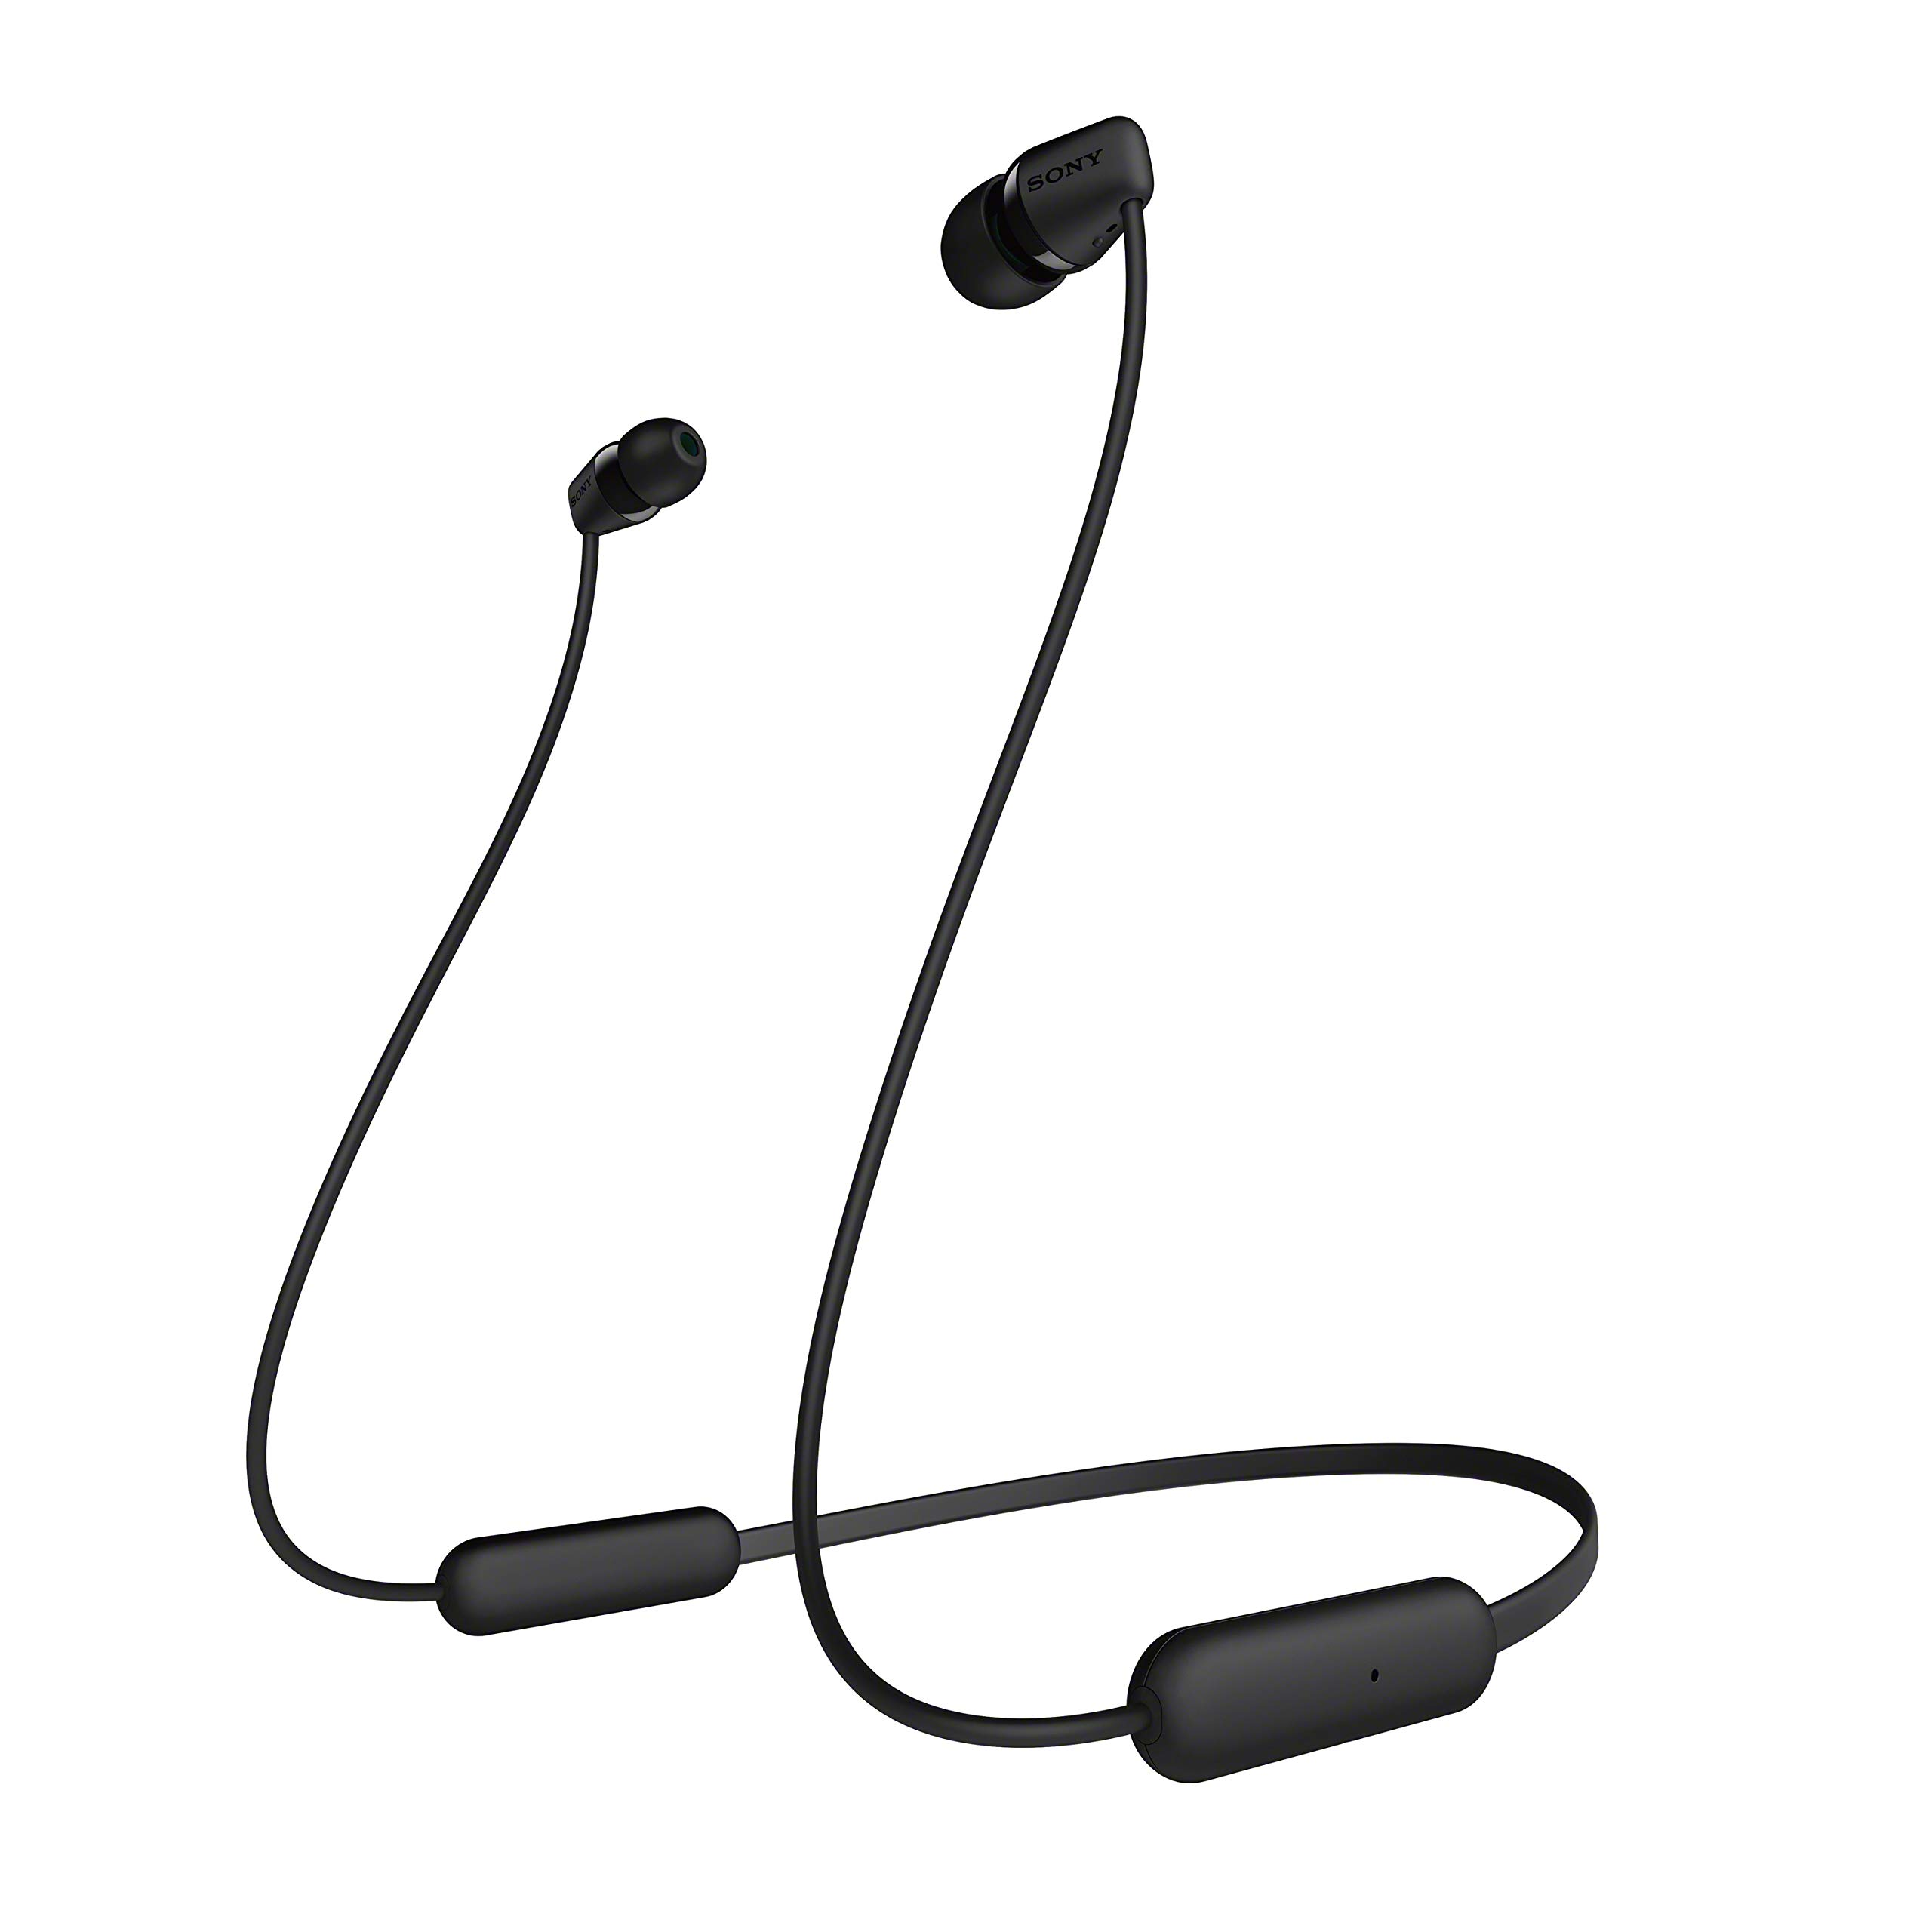 Bluetooth Earphones  SONY  WI-C200 -     https:--www.sony.ro-electroni